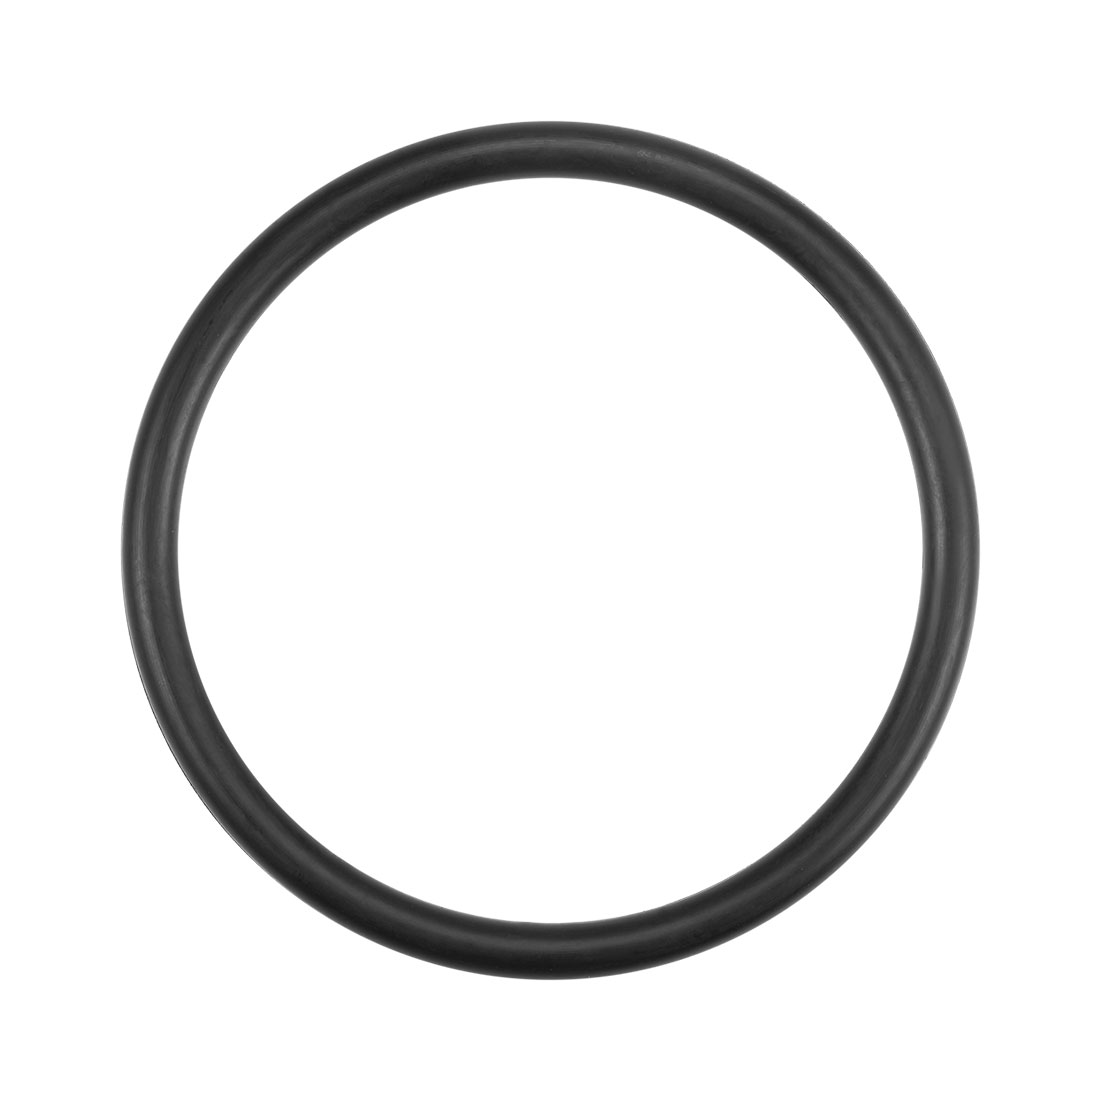 O-Rings Nitrile Rubber 48mm x 56mm x 4mm Round Seal Gasket